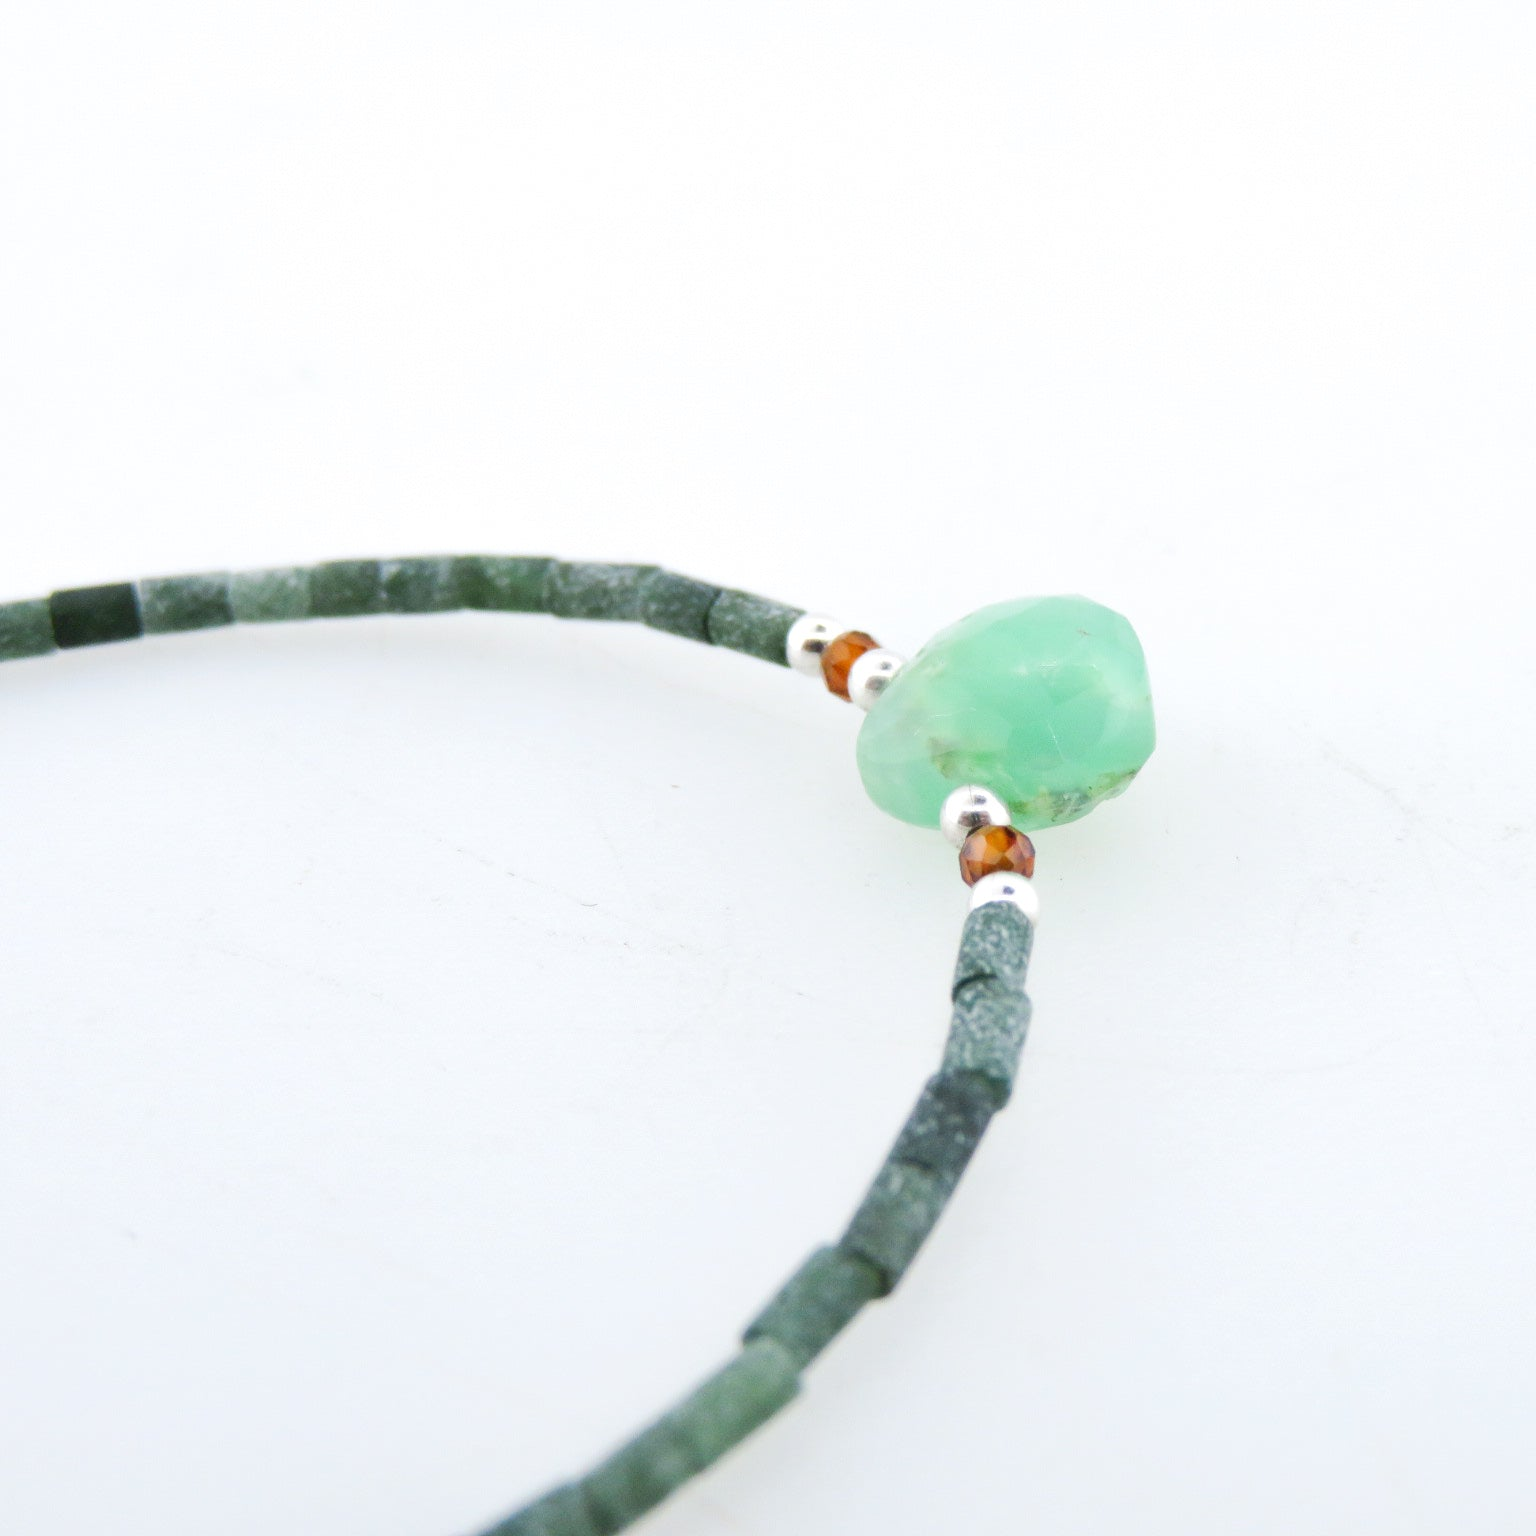 Jade Bracelet with Chrysoprase, Garnet and Silver Beads